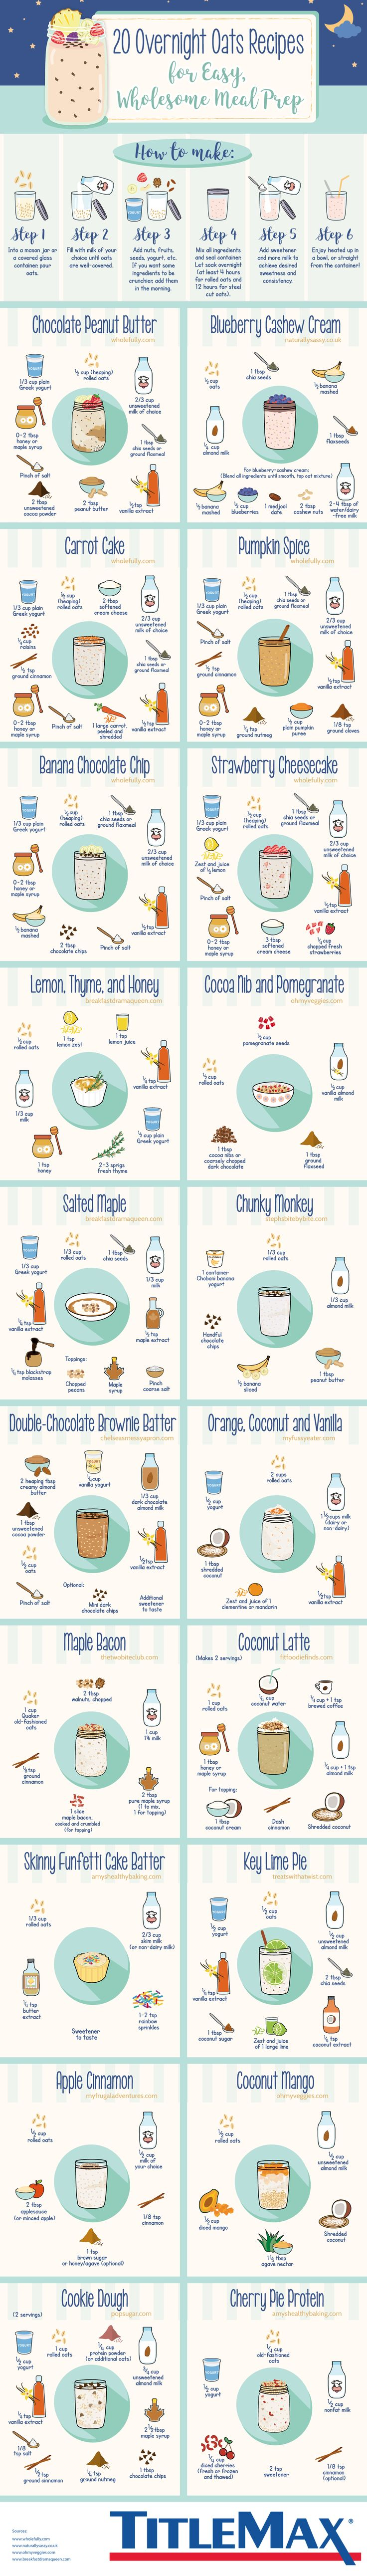 20 Overnight Oats Recipes for Easy, Wholesome Meal Prep #infographic #Food #Oats #Recipes